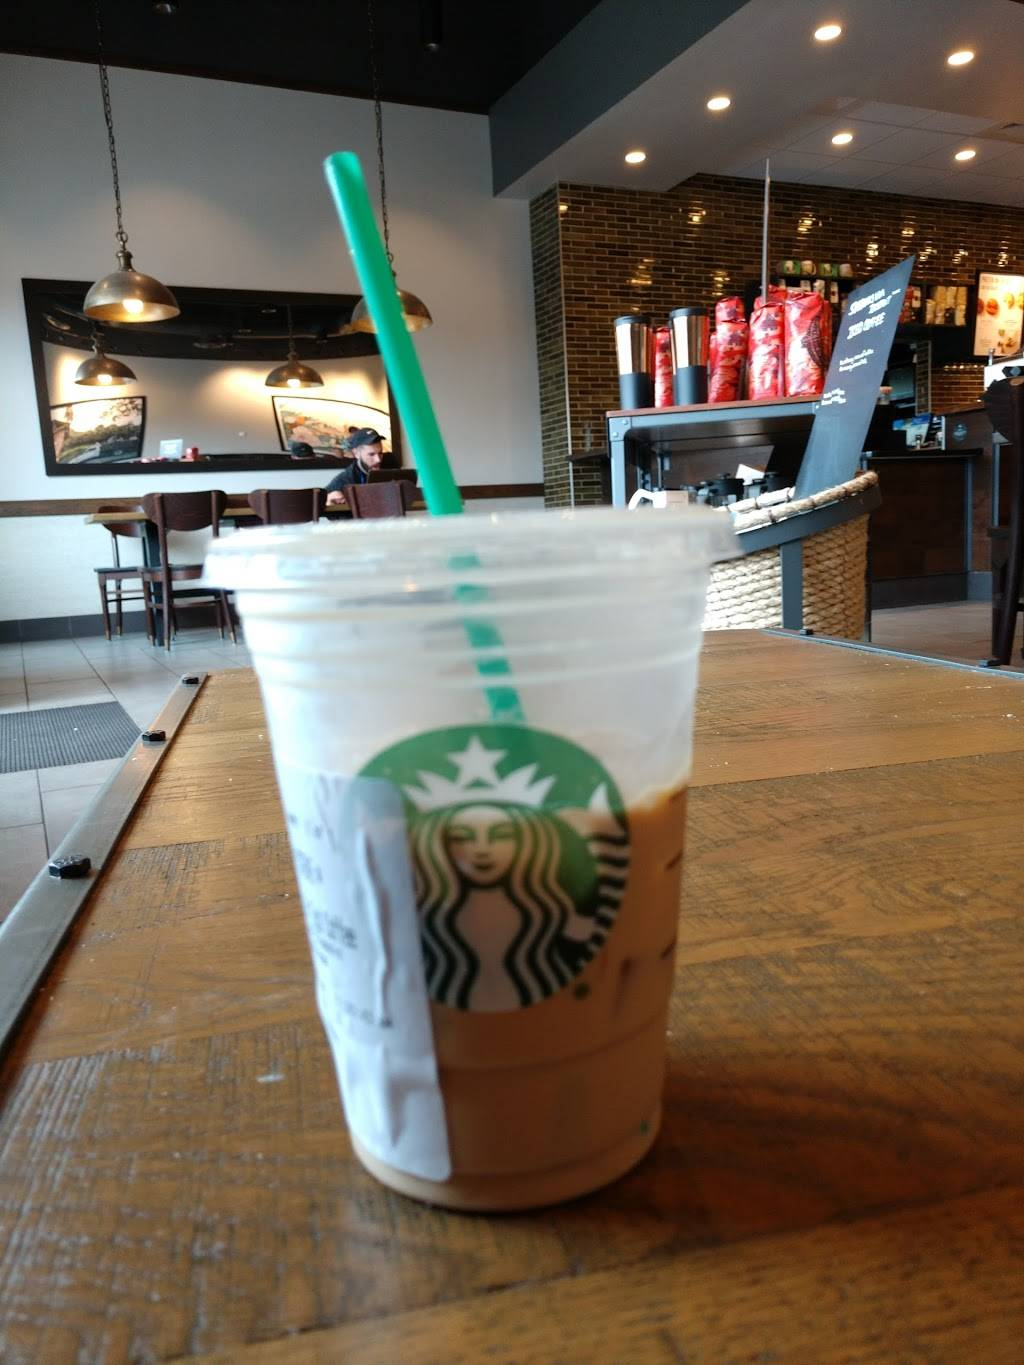 Starbucks | cafe | 456 Center St, Ludlow, MA 01056, USA | 4133359917 OR +1 413-335-9917